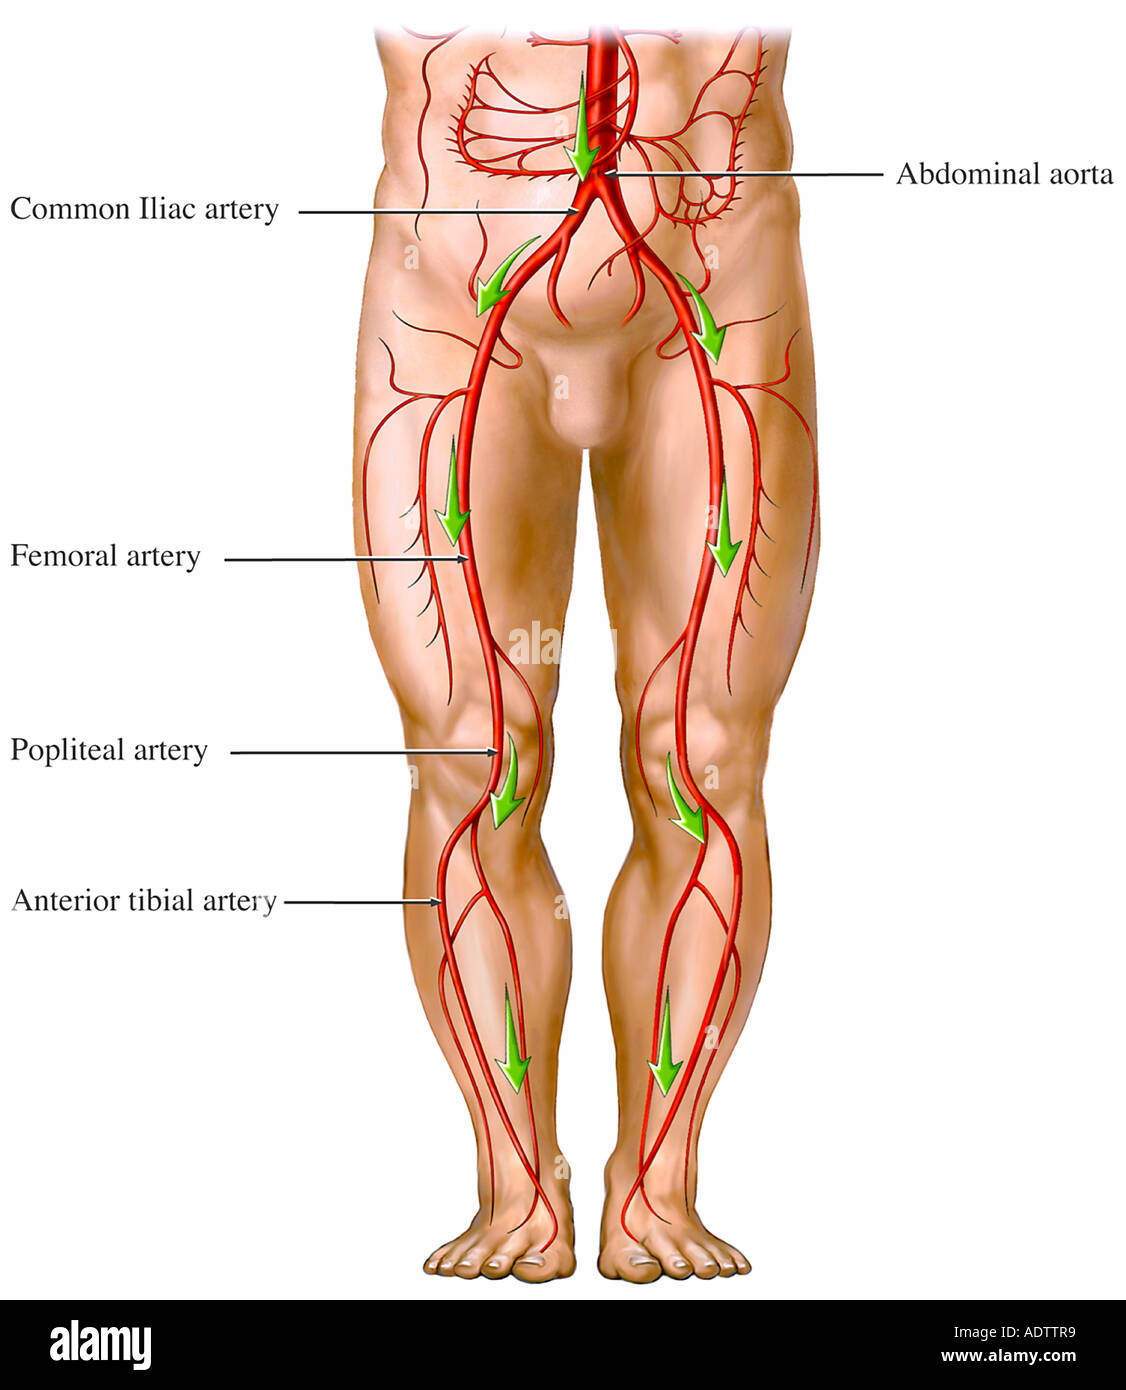 Femoral Artery Stock Photos & Femoral Artery Stock Images - Alamy